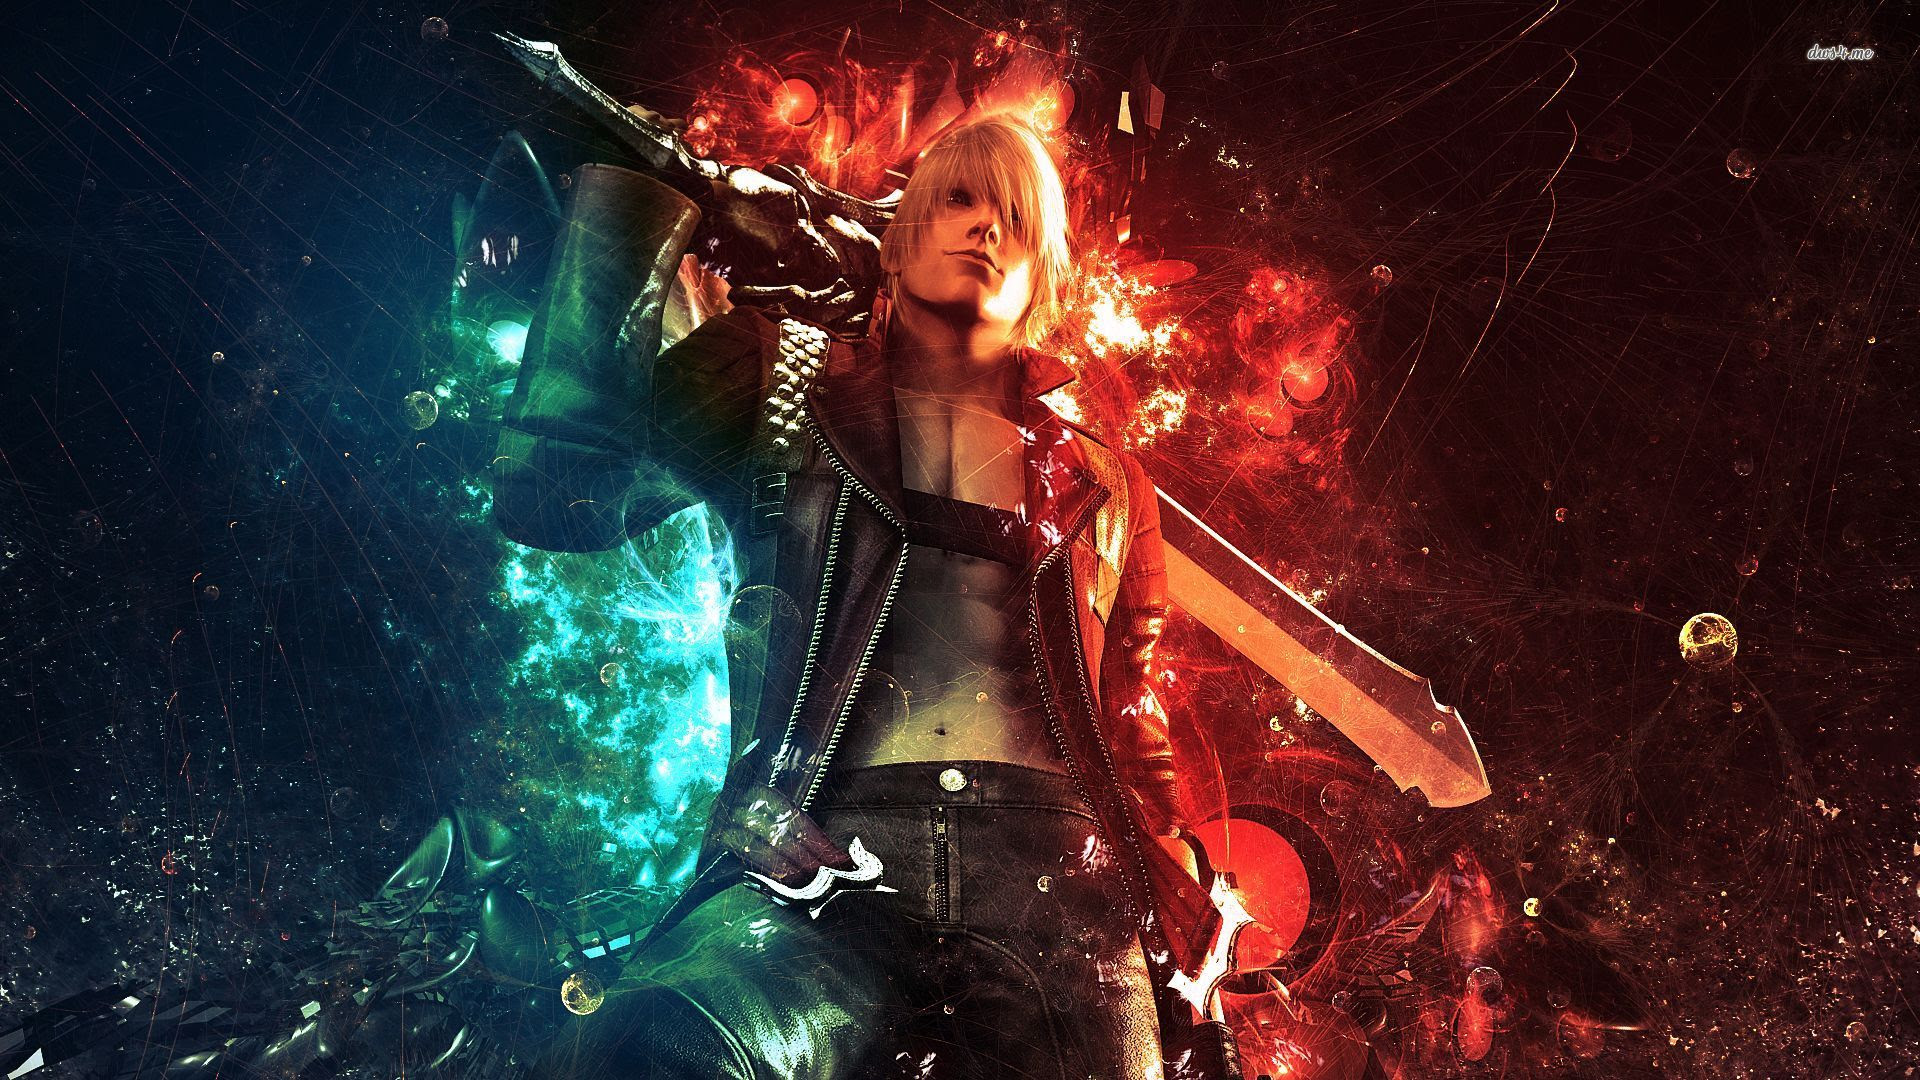 Devil May Cry Wallpaper 1920x1080 67394